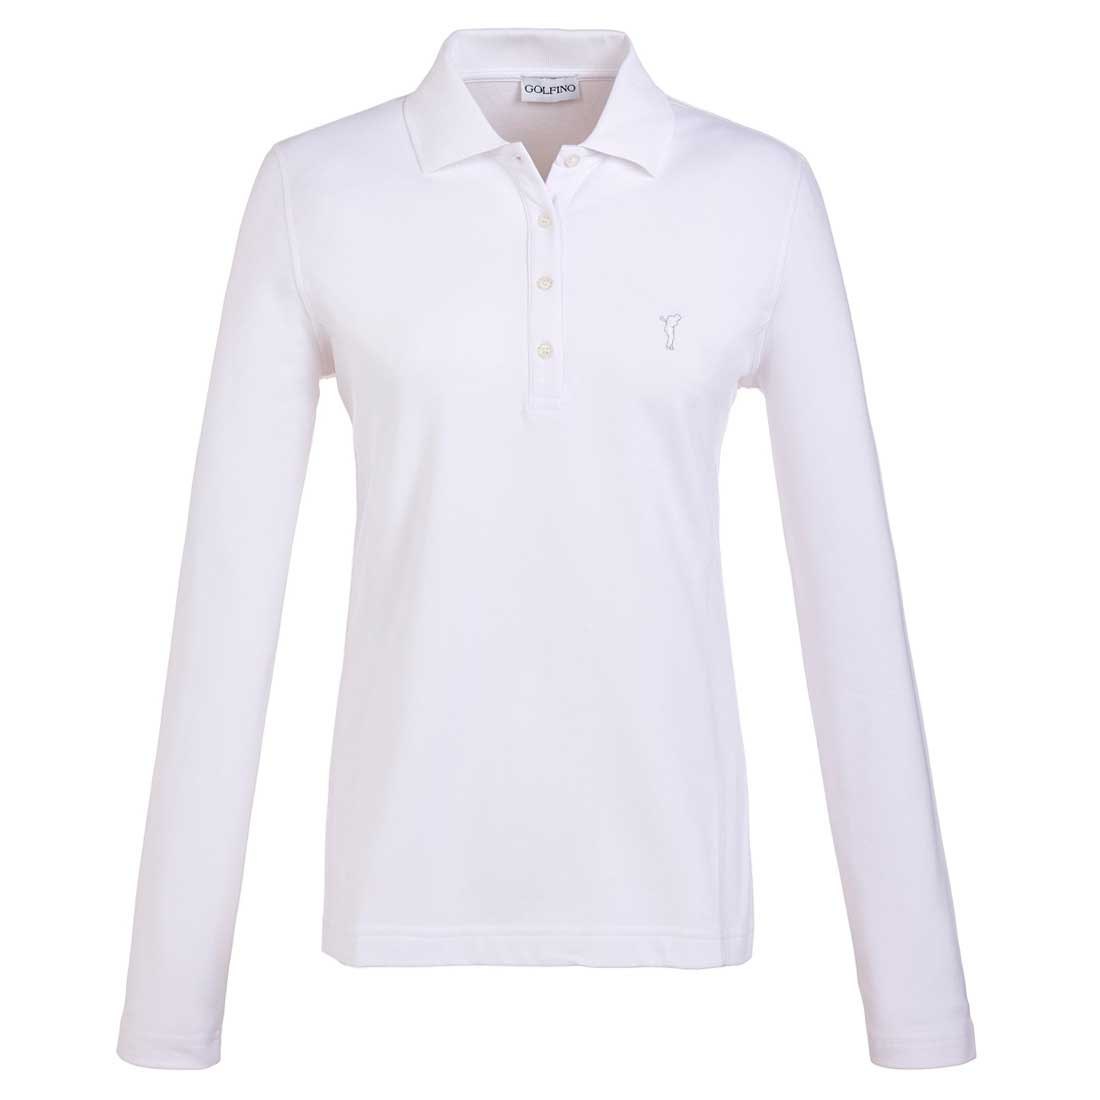 Wärmendes Damen Langarm Golfpolo mit Sun und Cold Protection in Slim Fit